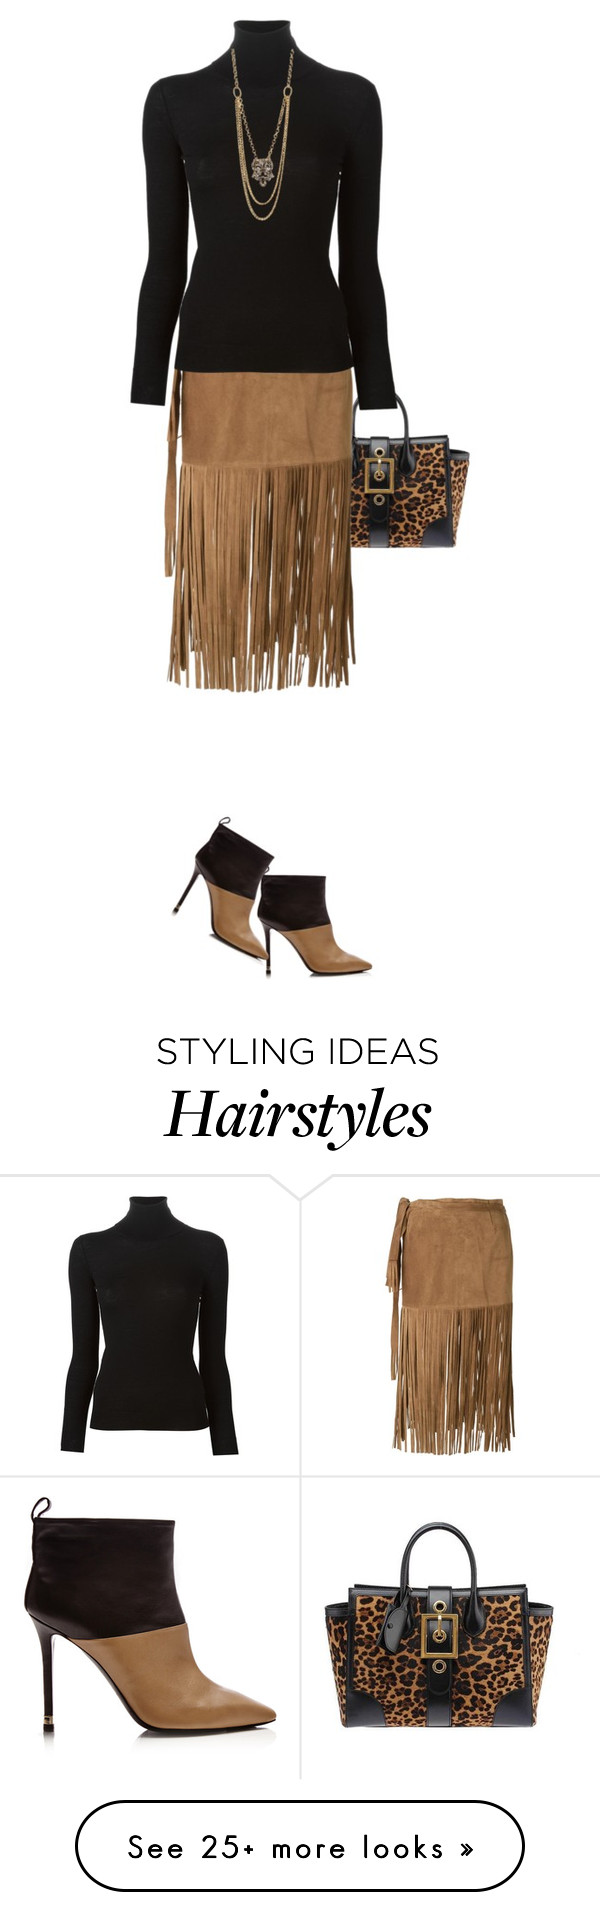 """."" by fashionmonkey1 on Polyvore featuring Gucci, P.A.R.O.S.H., Ermanno Scervino, Nicholas Kirkwood, Yochi, women's clothing, women's fashion, women, female and woman"